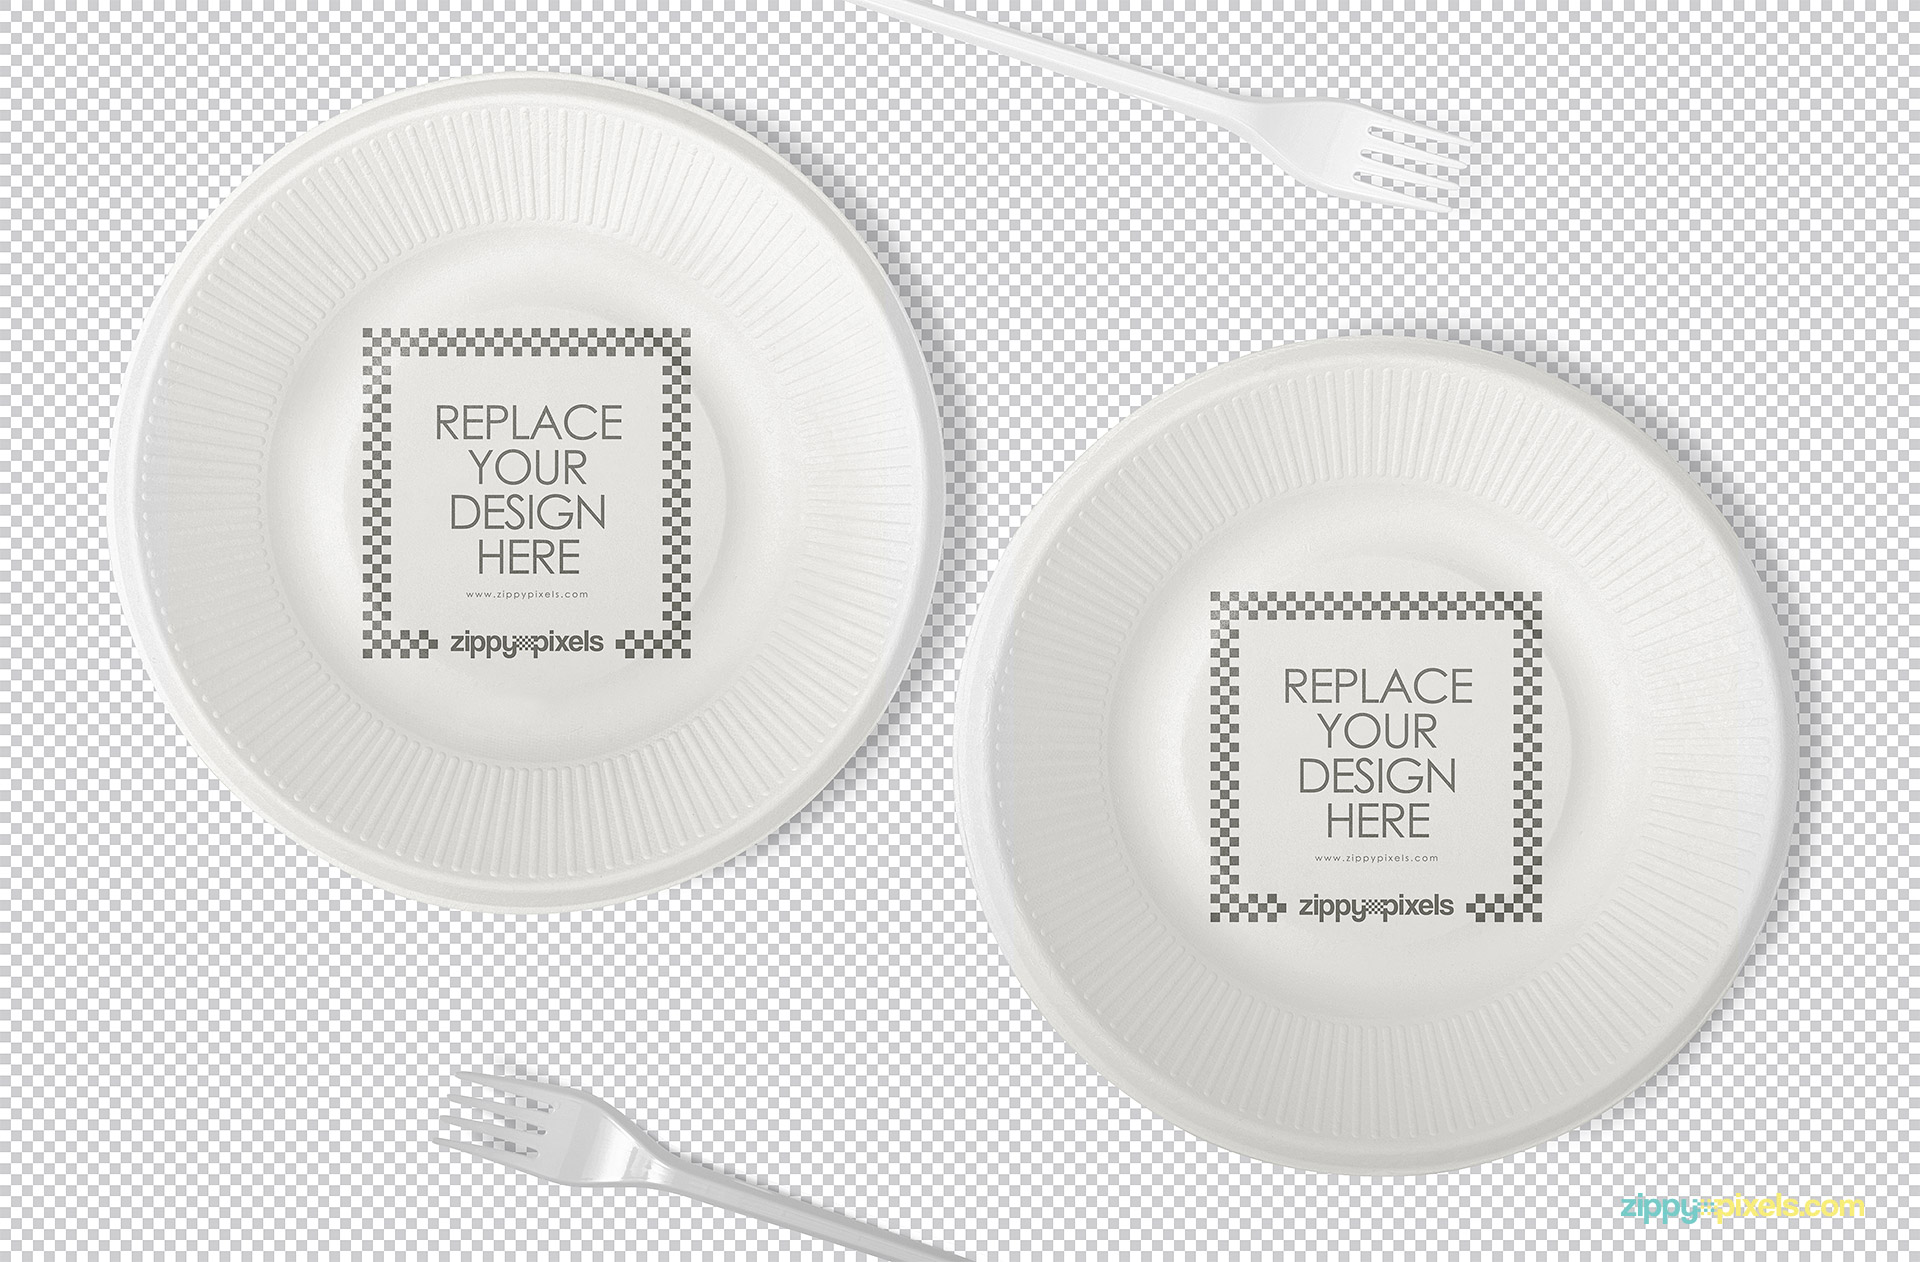 Disposable plate mockup with replaceable design option.